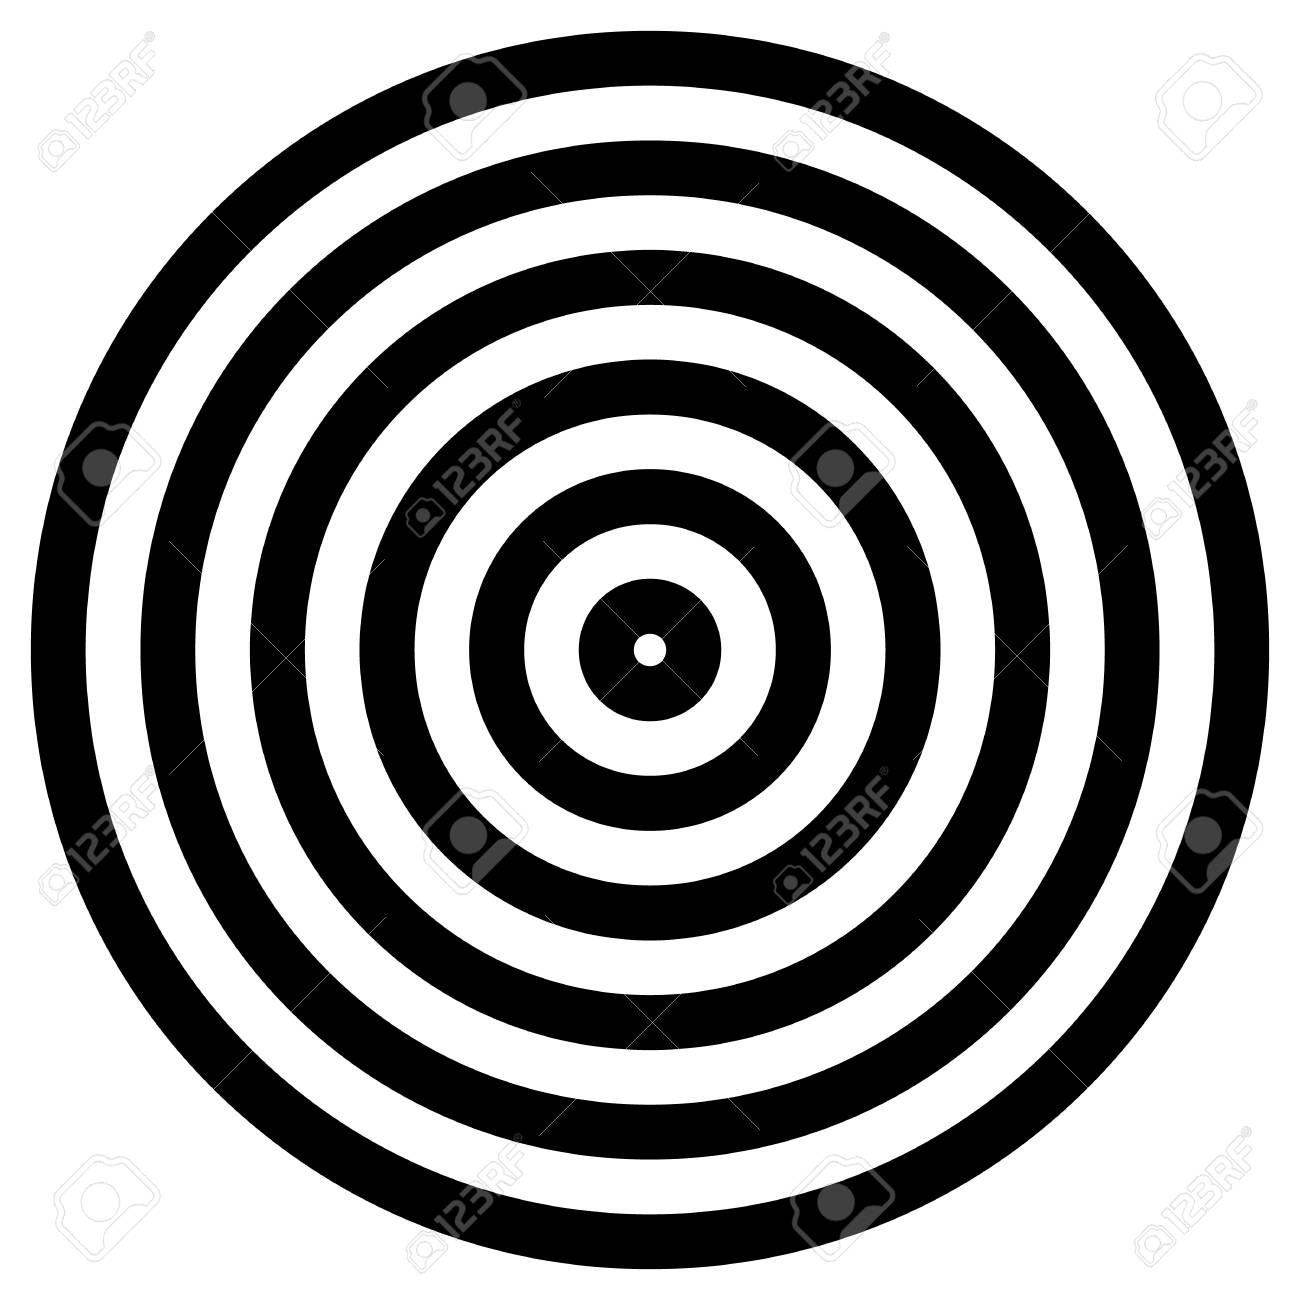 Simple concentric, radiating circle graphics isolated on white - 53764058